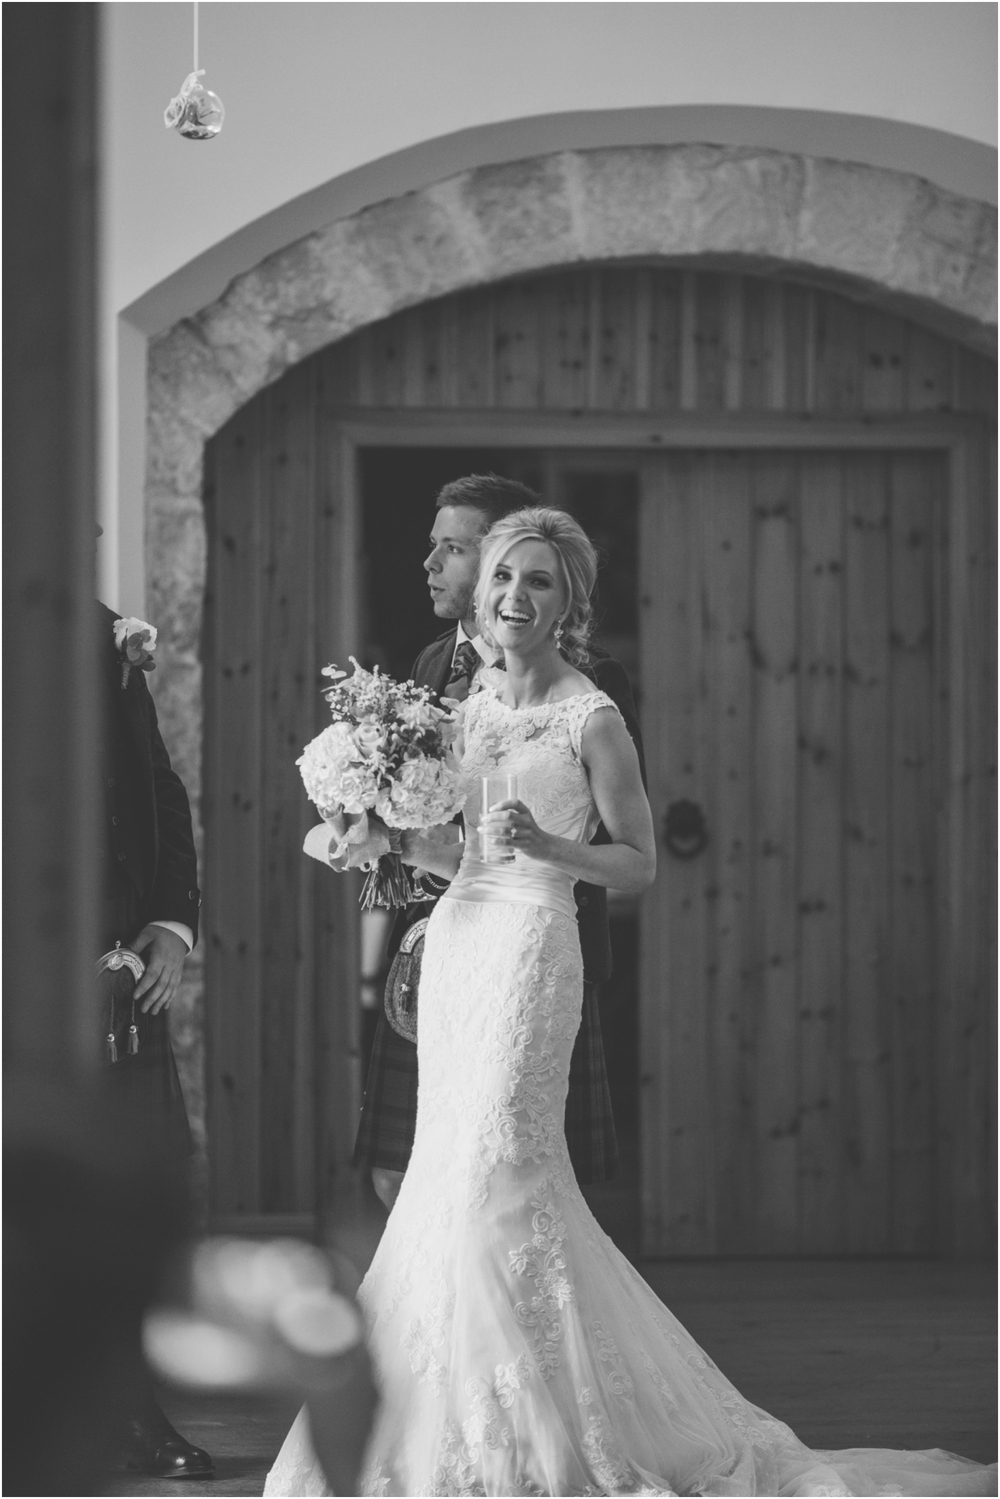 suzanne_li_photography_aswanley_wedding_0095.jpg